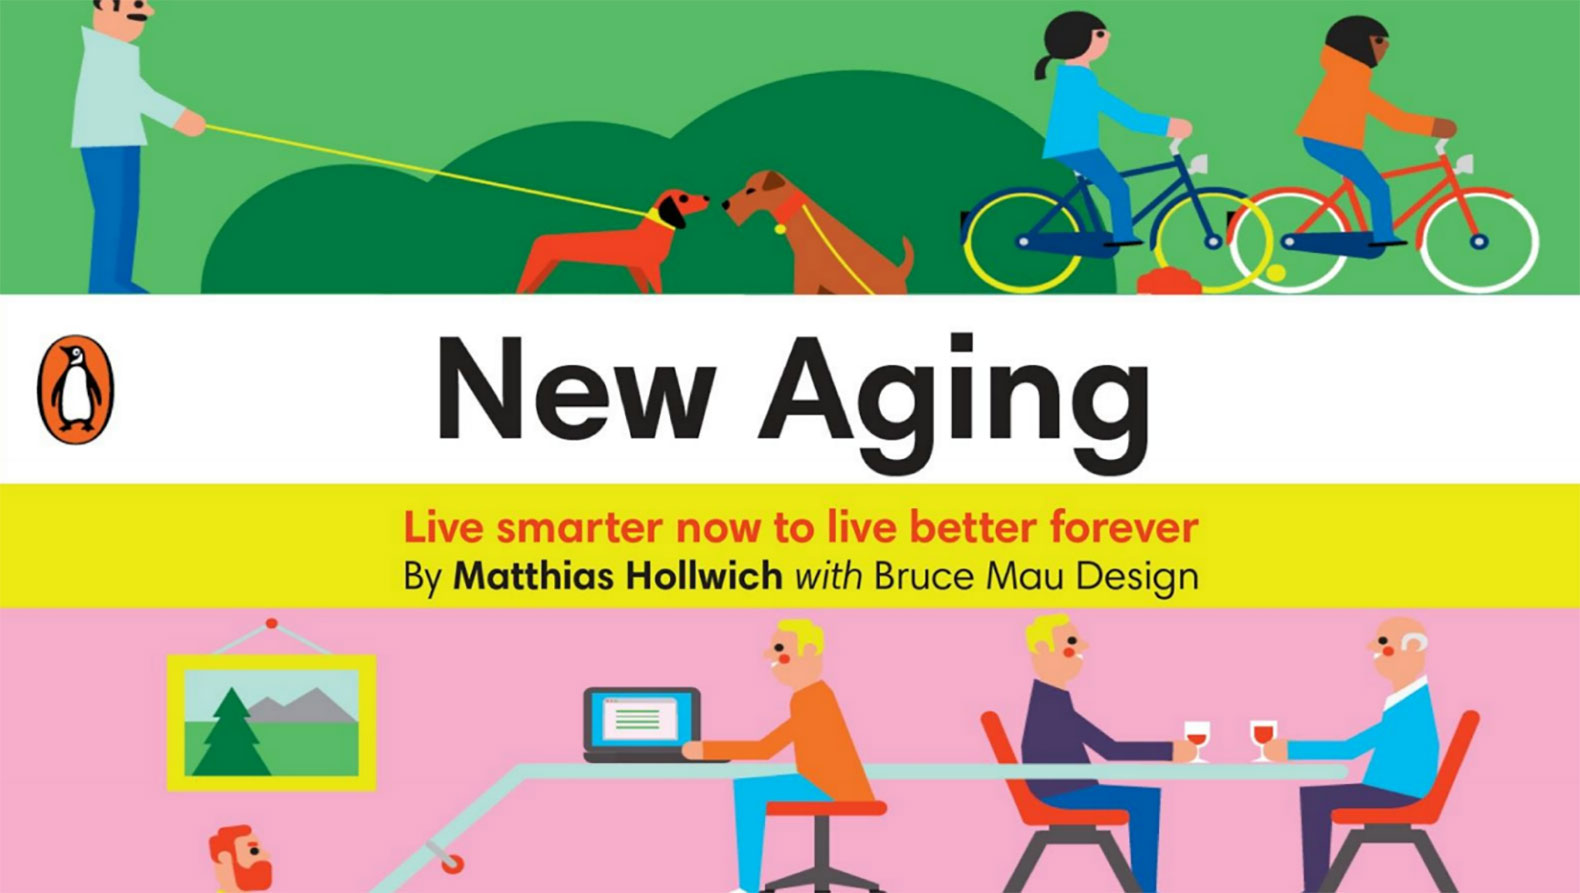 New Aging: Architect Matthias Hollwich's new book explores how we can live smarter now to live better forever